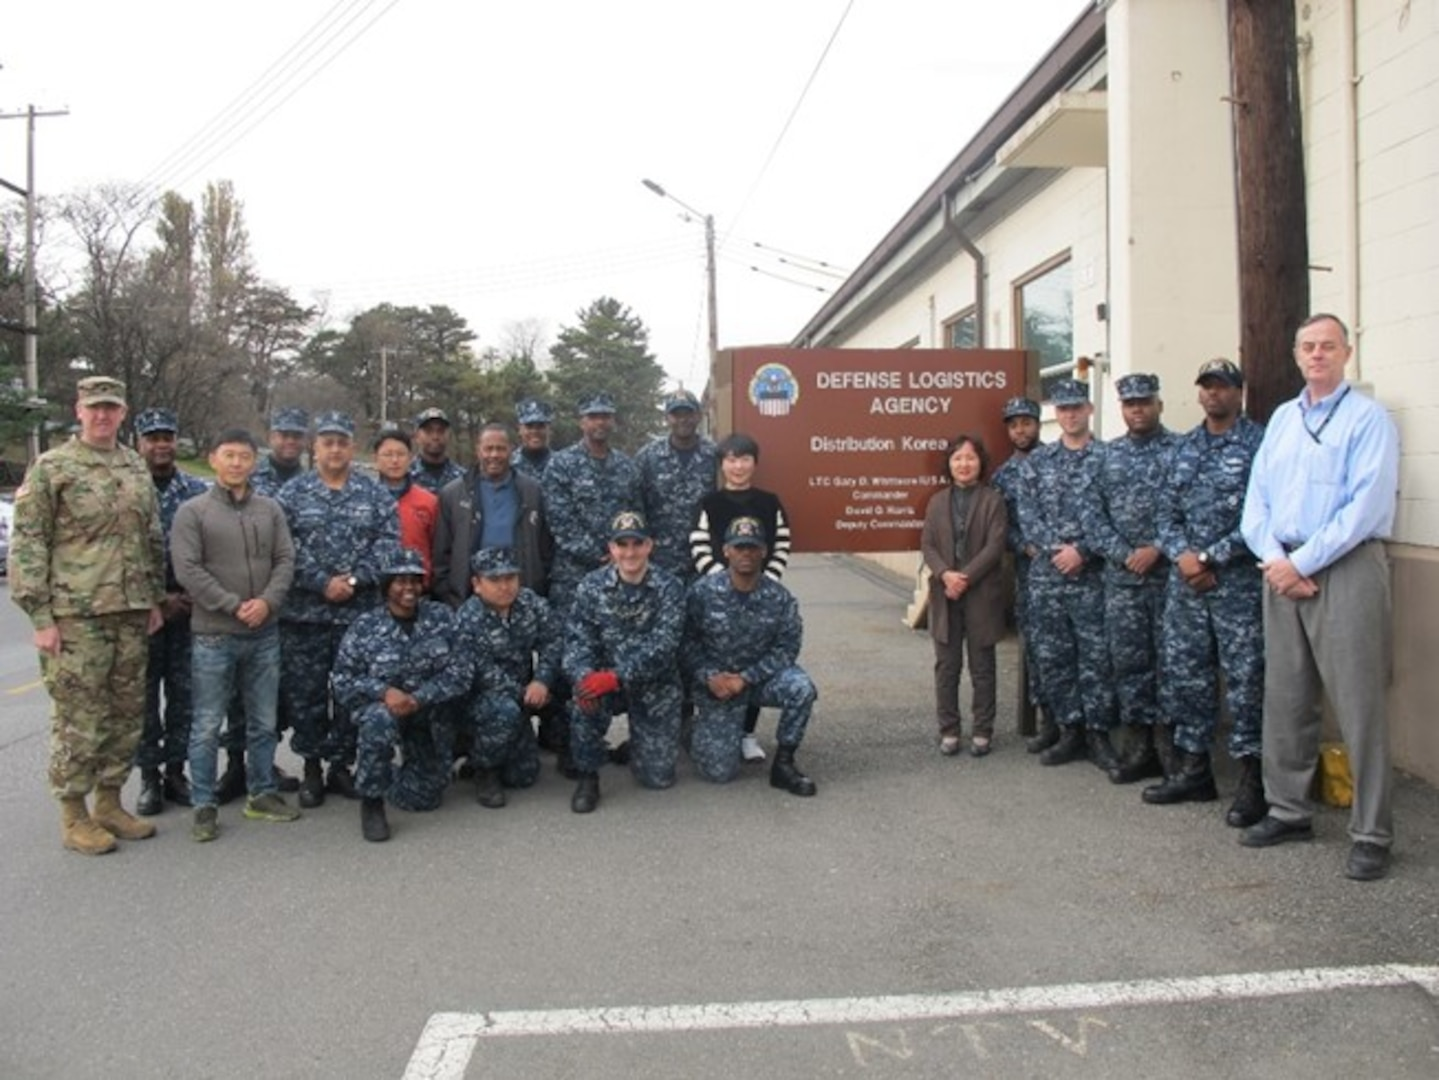 US Navy Reservists joined forces for the first time with United States Army soldiers, civilians and Korean nationals to work together as a team for the Defense Logistics Agency Distribution Korea.